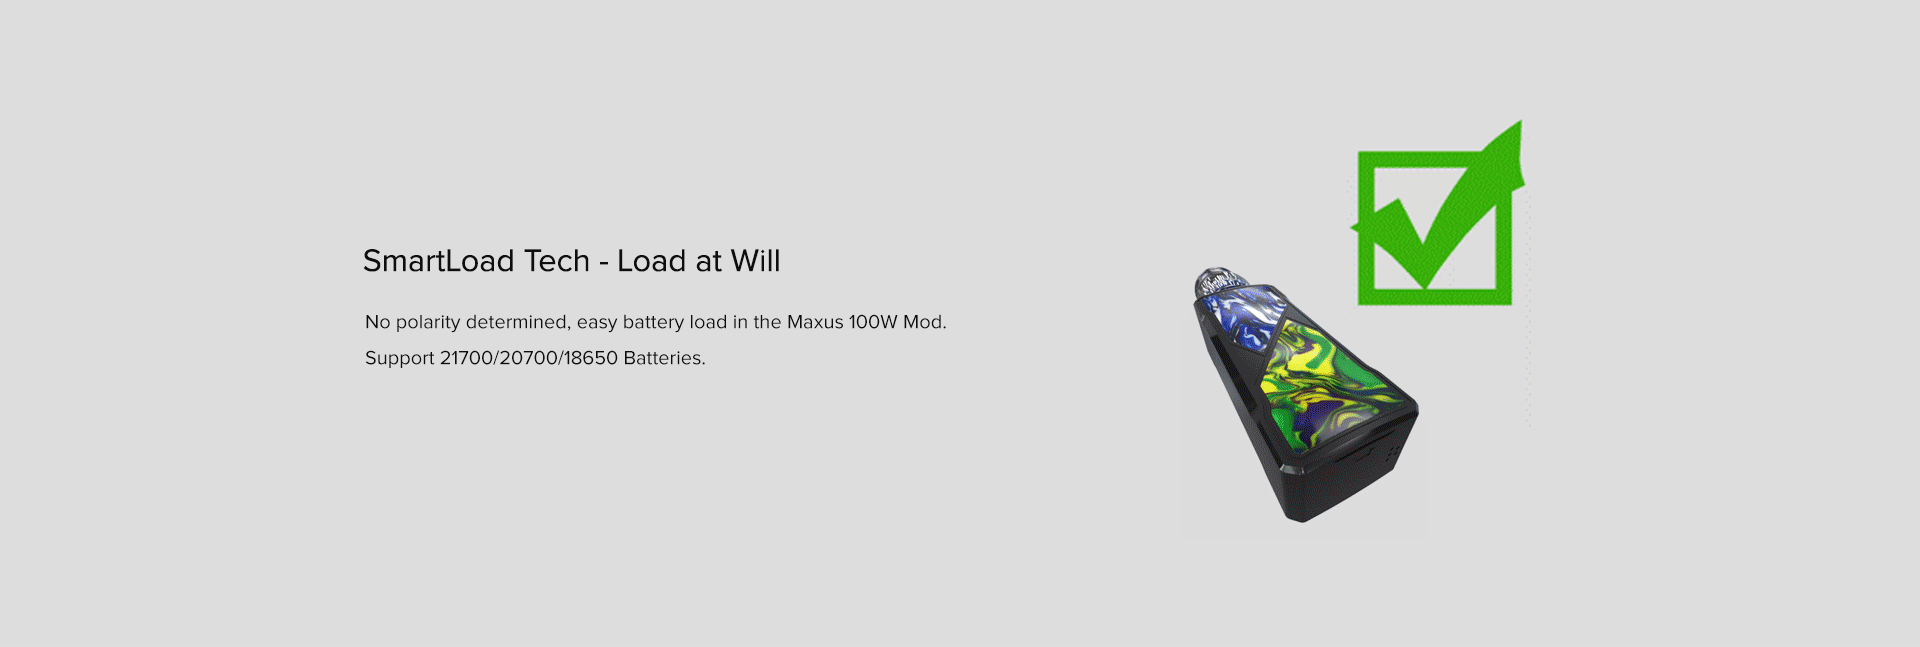 Maxus 100W Smartload.png